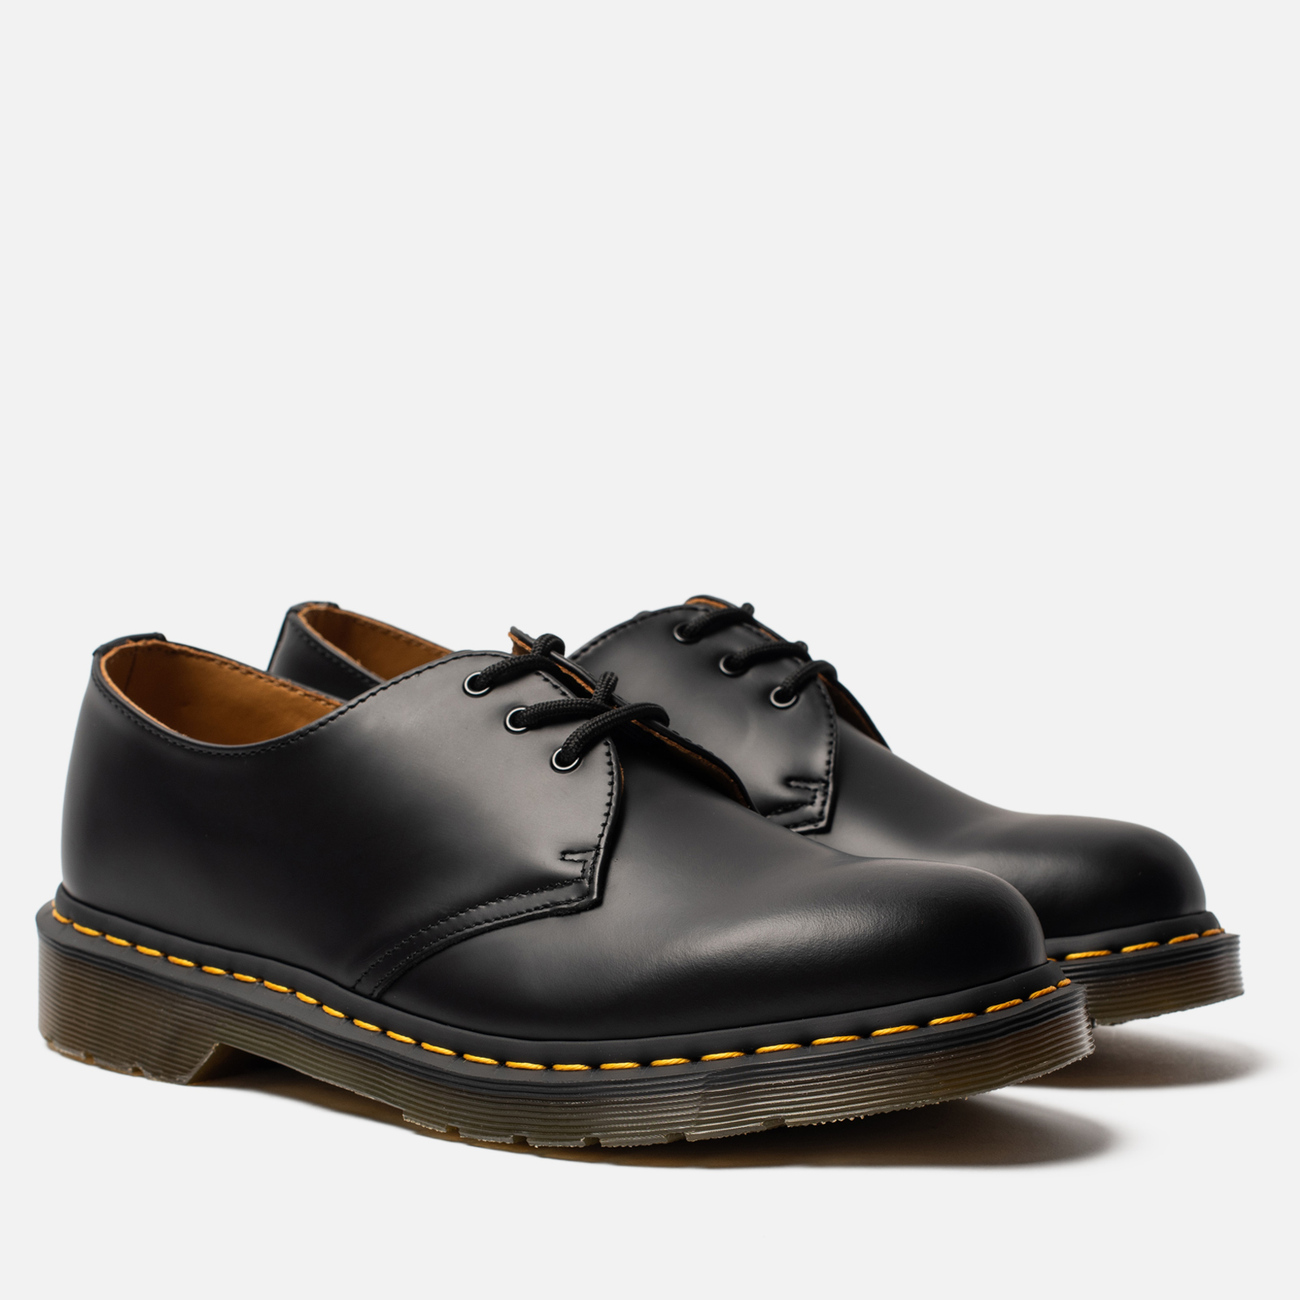 Ботинки Dr. Martens 1461 Smooth Black